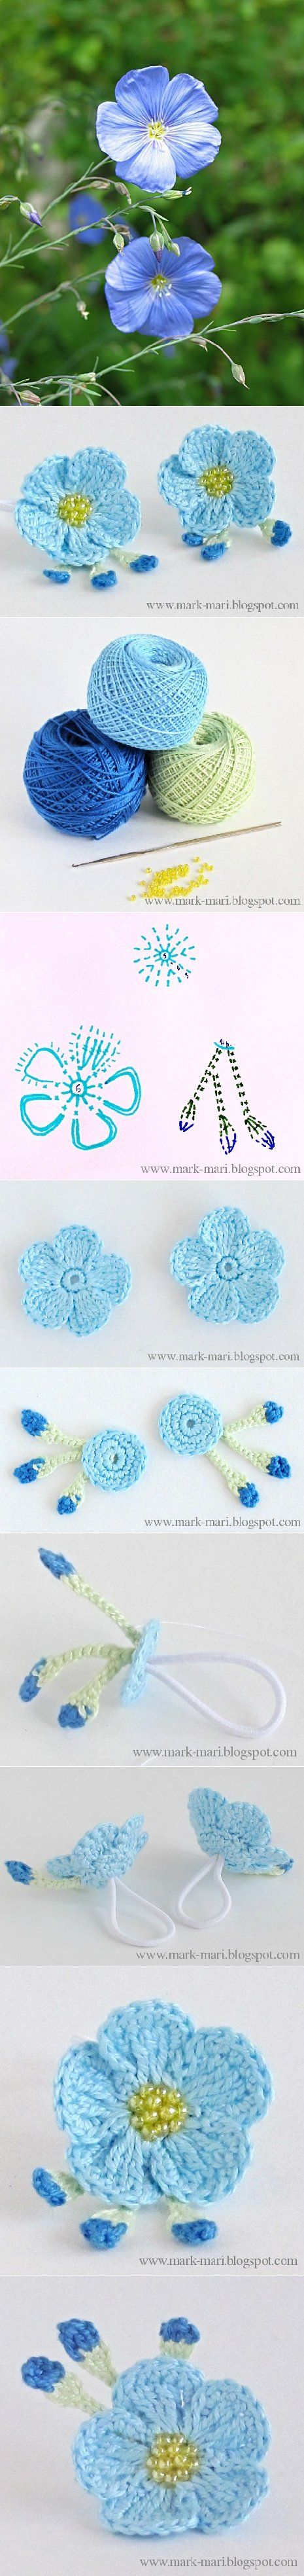 Crochet Flax-Blossoms...all kinds of pretty flowers with diagrams for hair bands!! These make pretty flower rings!!